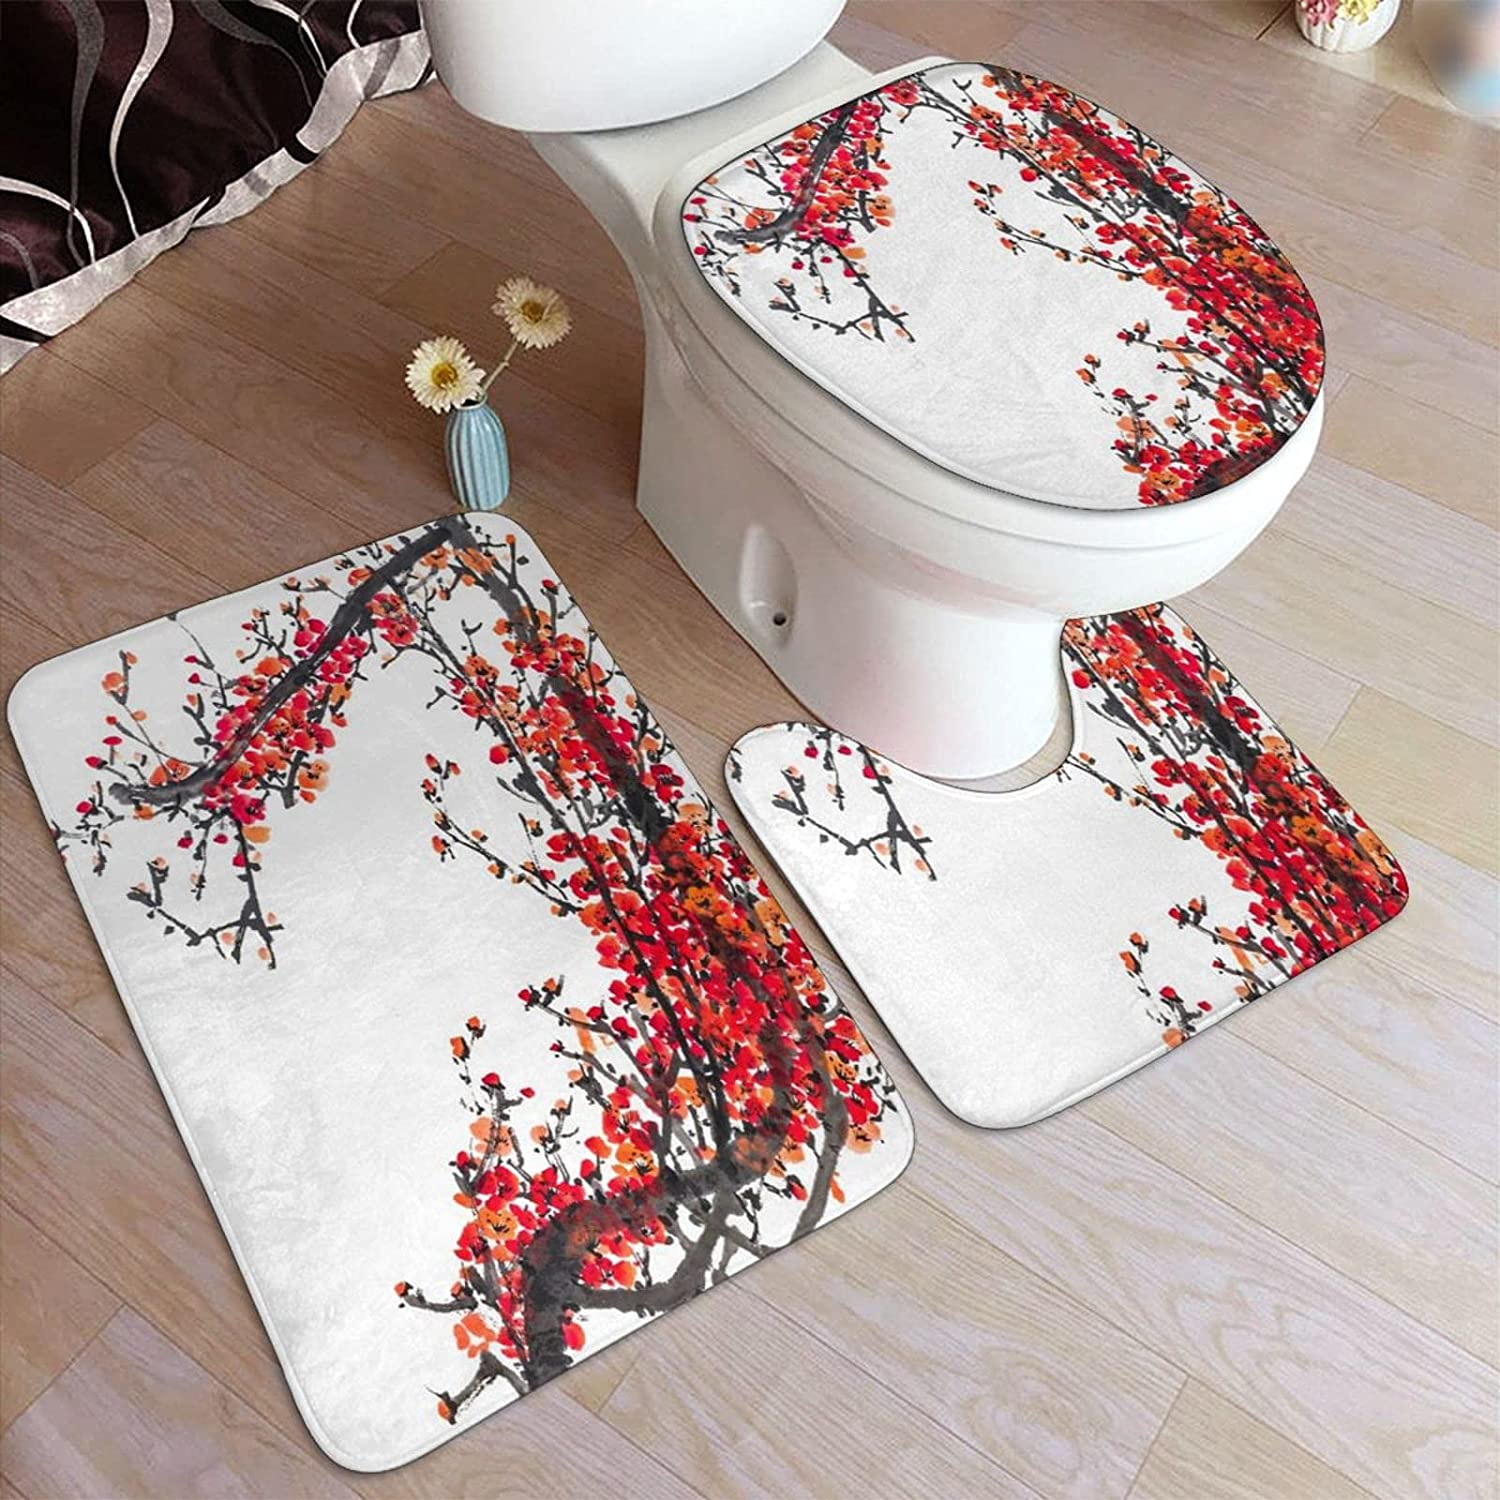 HASENCIV Courier shipping free shipping 3 Piece Bathroom Rug Traditional Chinese Max 83% OFF Painti Set The